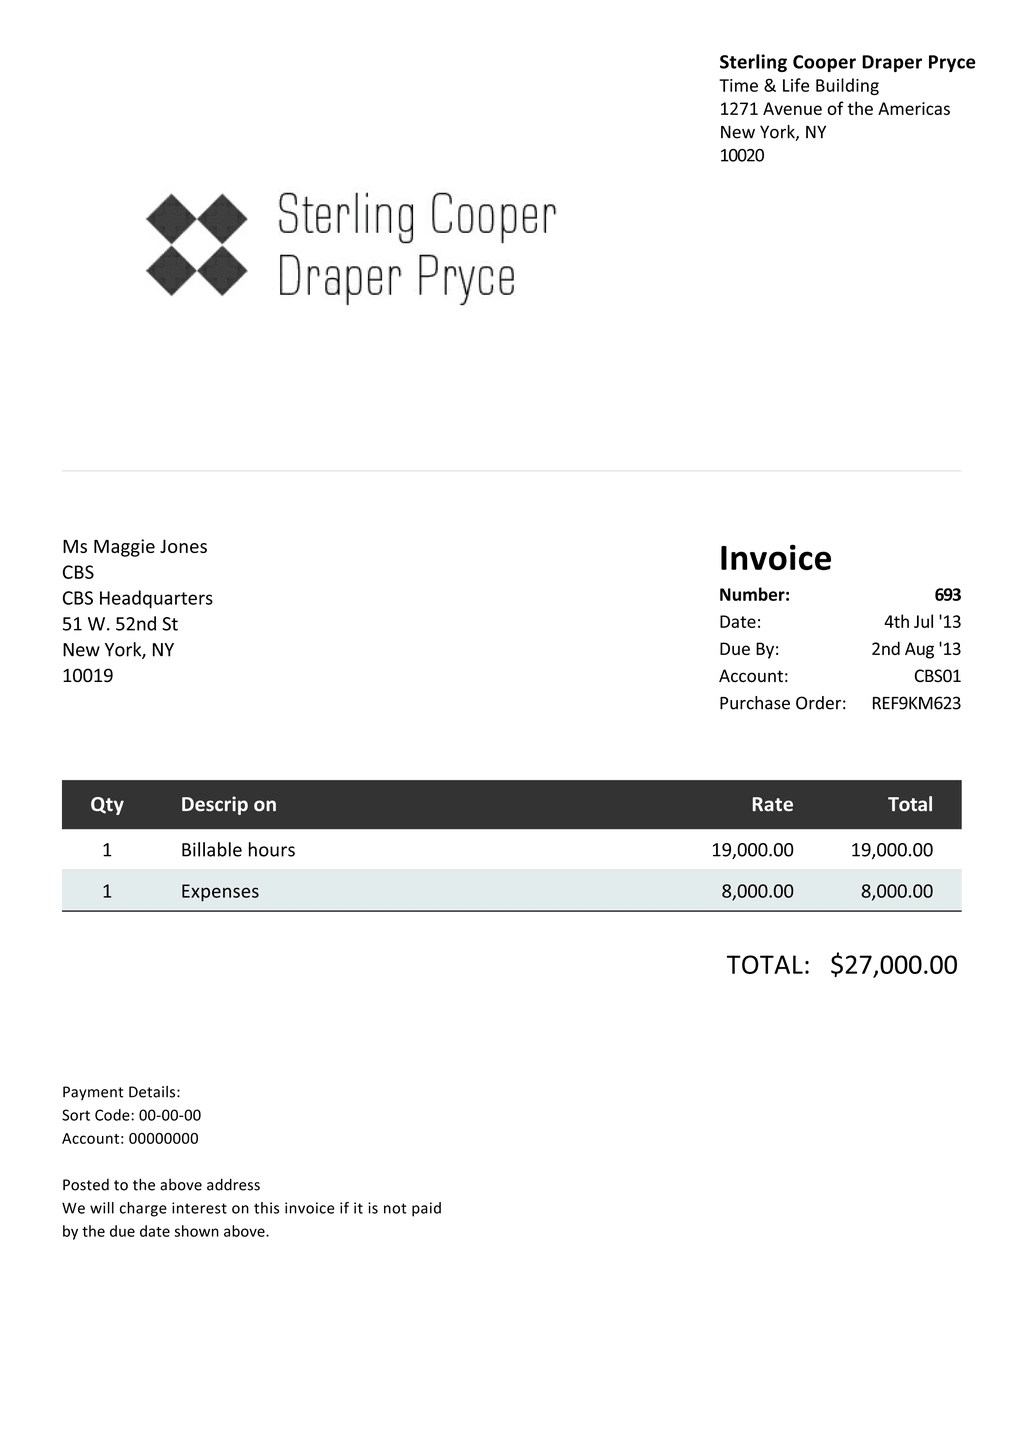 Amatospizzaus  Unique Professional Invoice Template Word Invoice Word Template Invoice  With Lovable Invoice Sample Template Invoice Templates For Excel Canadian   Professional Invoice With Agreeable Single Invoice Finance Also Ebay How To Send Invoice In Addition How To Set Up An Invoice And Automotive Invoices As Well As Best Invoice App For Iphone Additionally Plumbing Invoice Forms From Sklepco With Amatospizzaus  Lovable Professional Invoice Template Word Invoice Word Template Invoice  With Agreeable Invoice Sample Template Invoice Templates For Excel Canadian   Professional Invoice And Unique Single Invoice Finance Also Ebay How To Send Invoice In Addition How To Set Up An Invoice From Sklepco